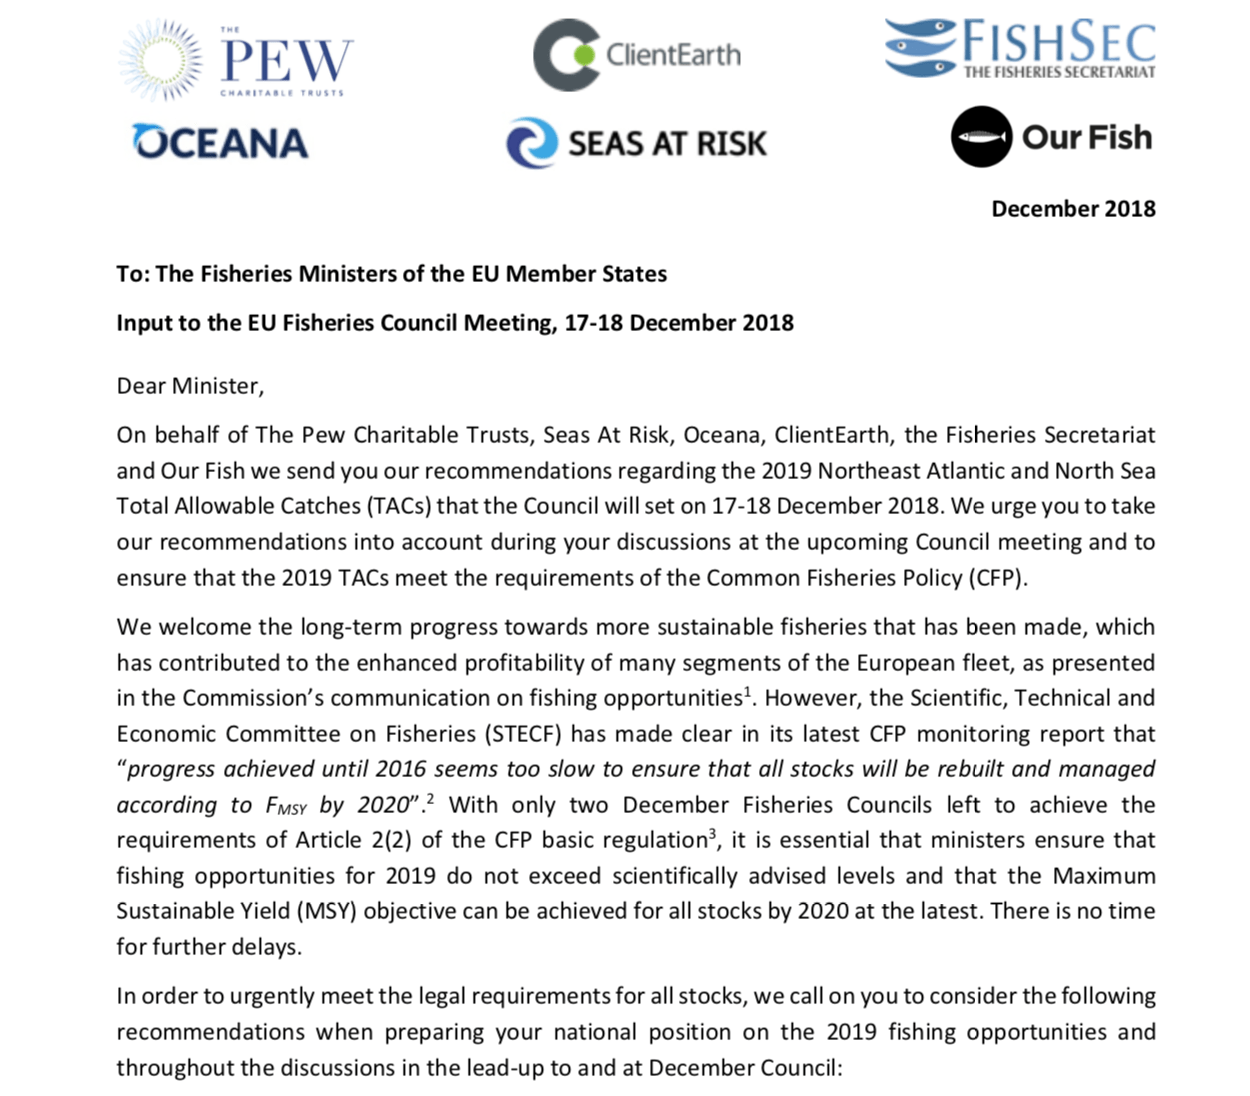 Joint NGO recommendations for 2019 total allowable catches For selected Northeast Atlantic and North Sea stocks, December 2018